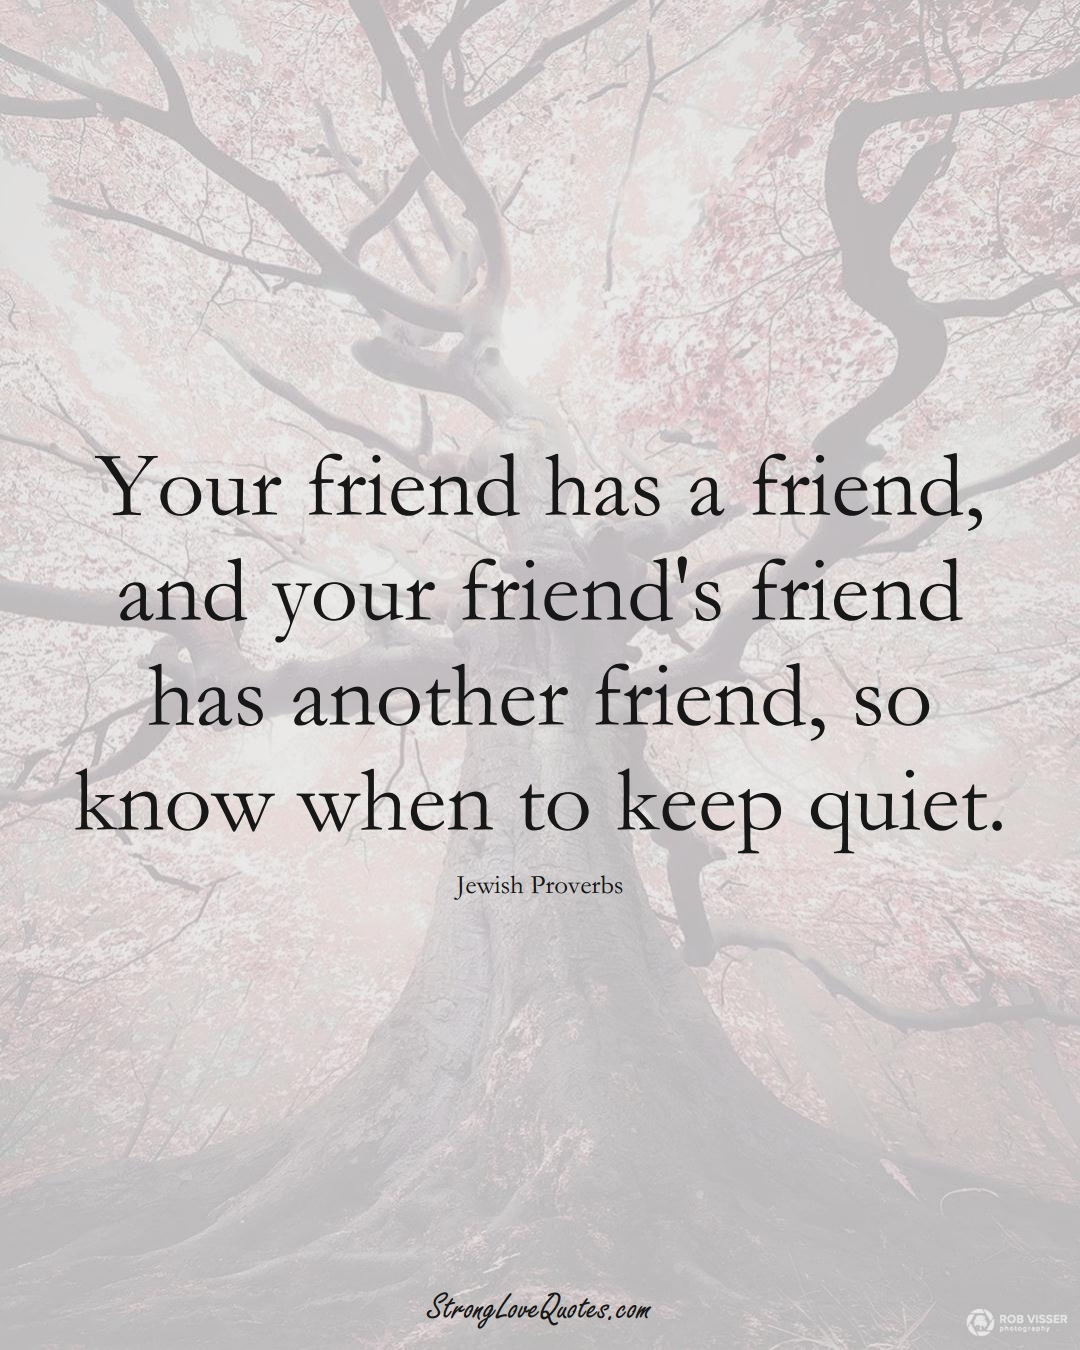 Your friend has a friend, and your friend's friend has another friend, so know when to keep quiet. (Jewish Sayings);  #aVarietyofCulturesSayings